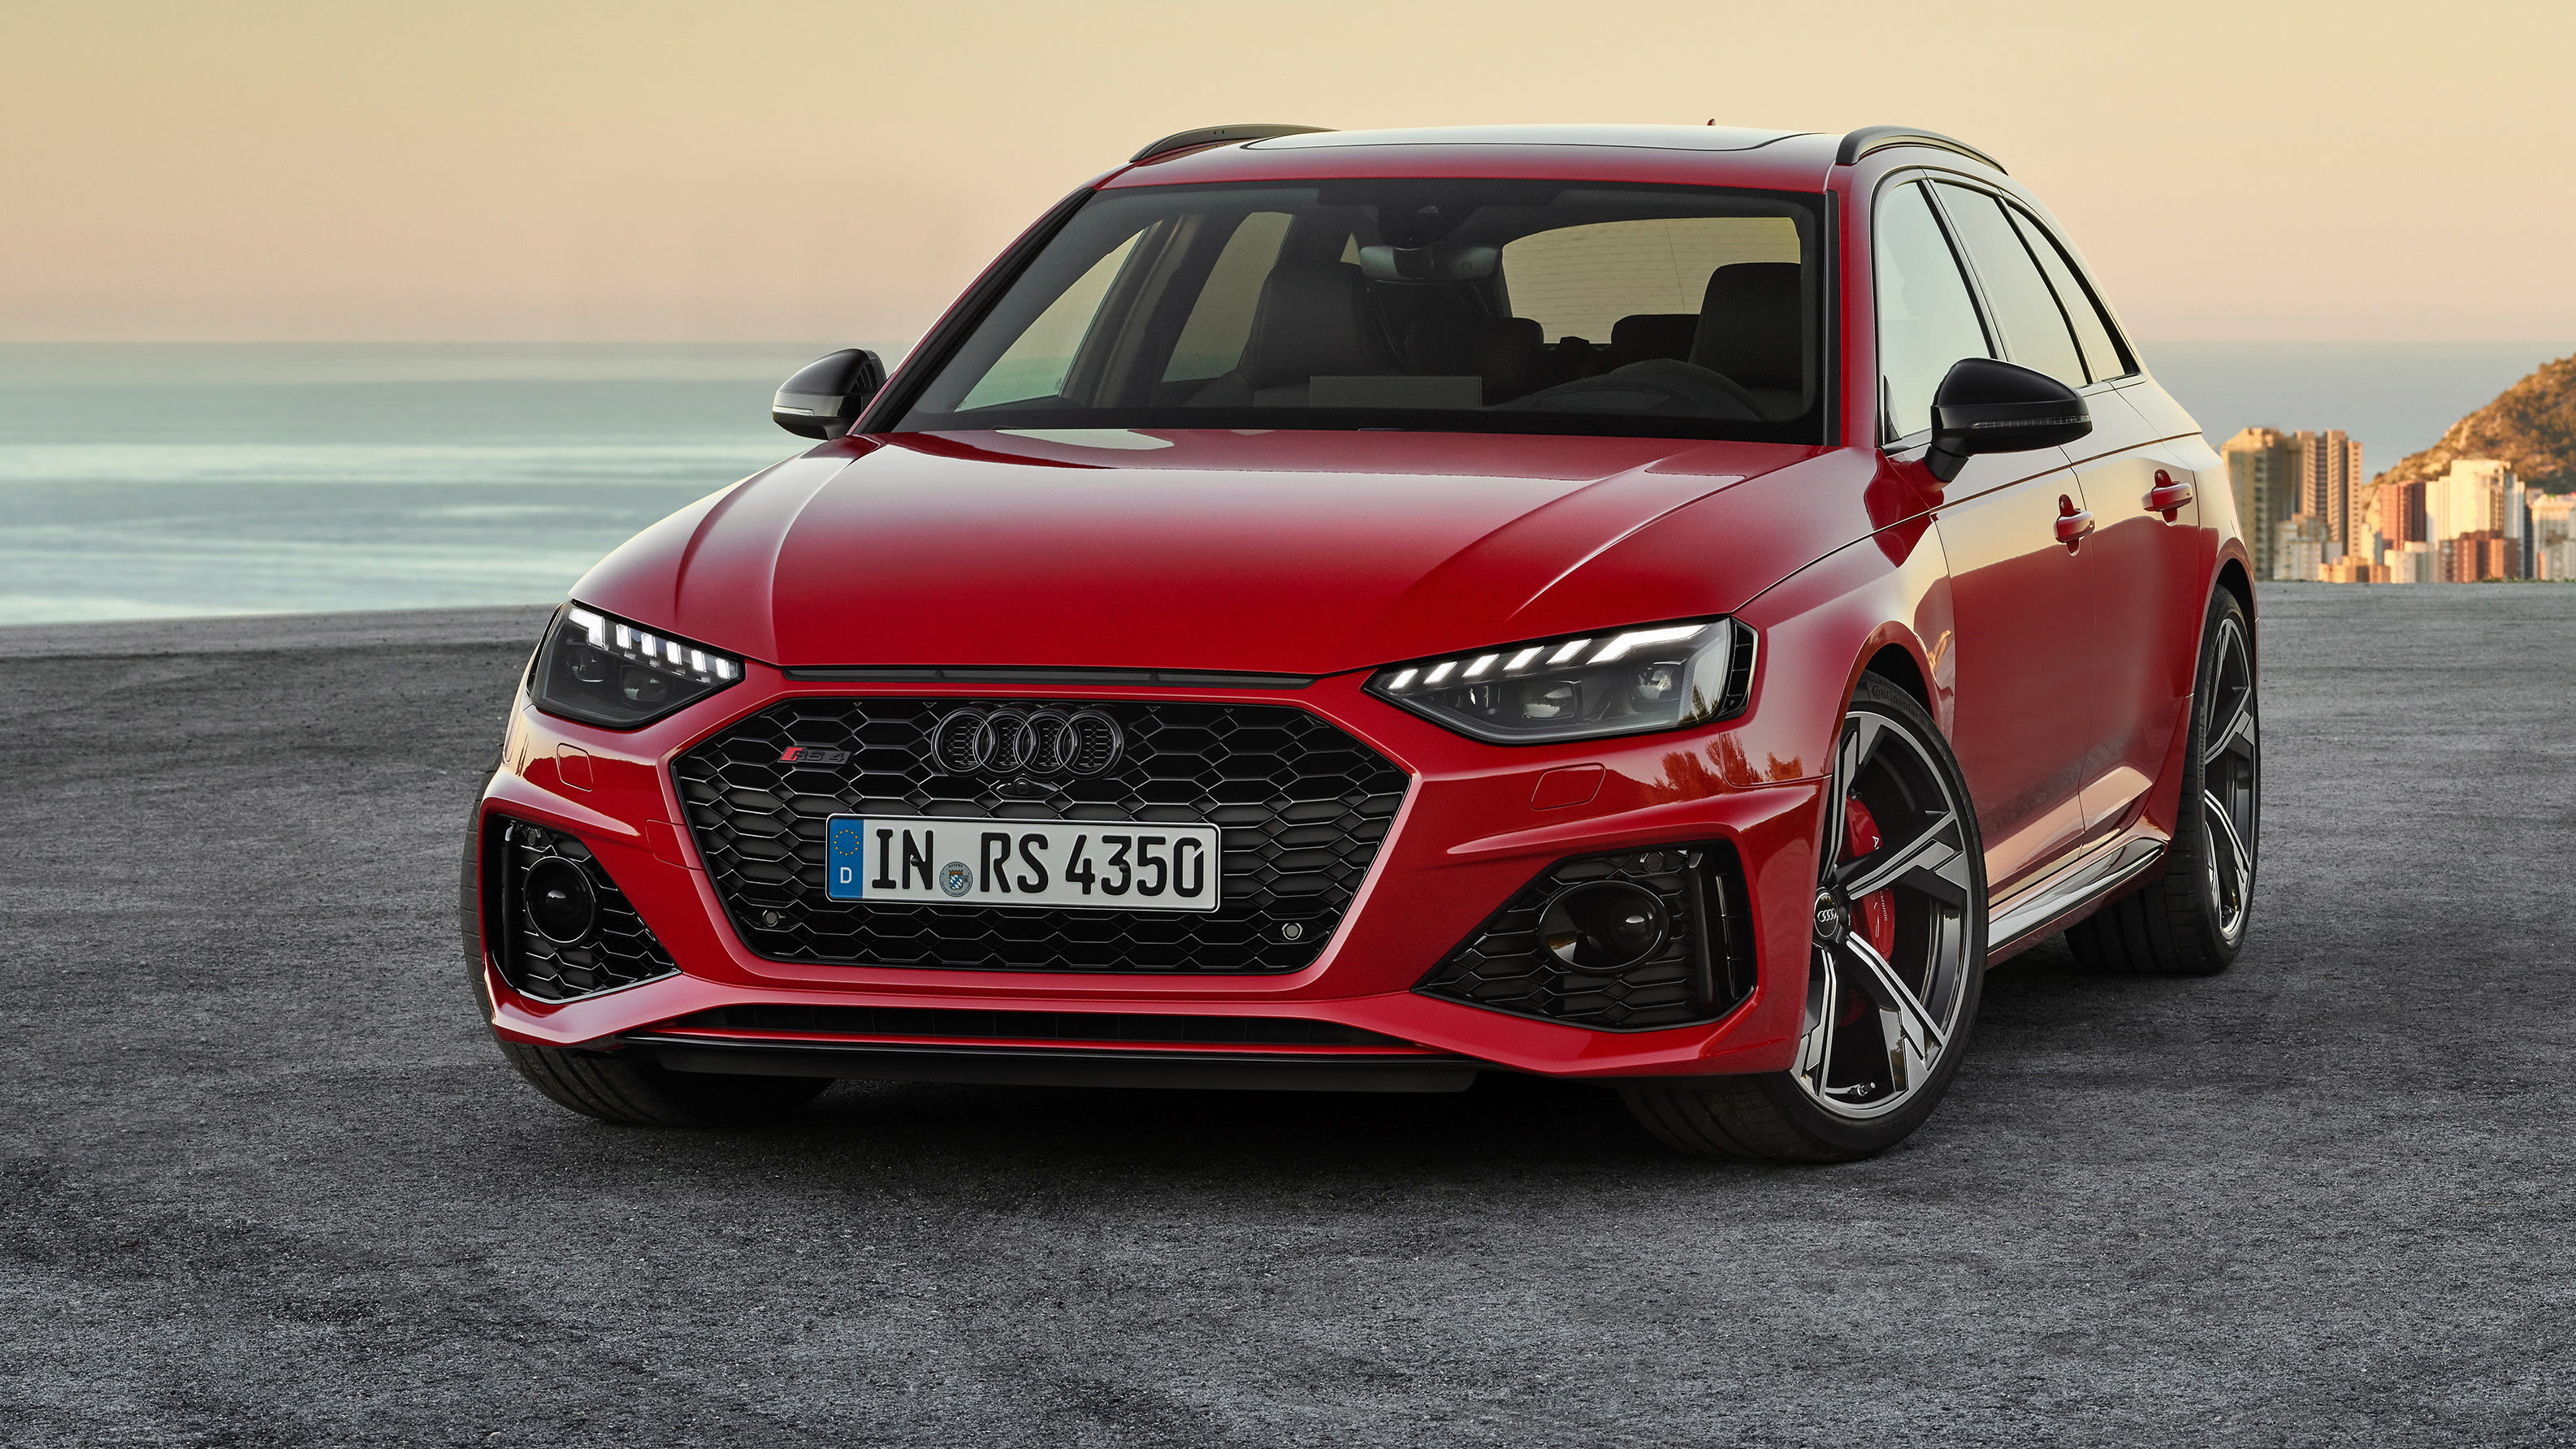 2021 Audi Rs4 Avant Audi Rs5 Price And Specs Caradvice